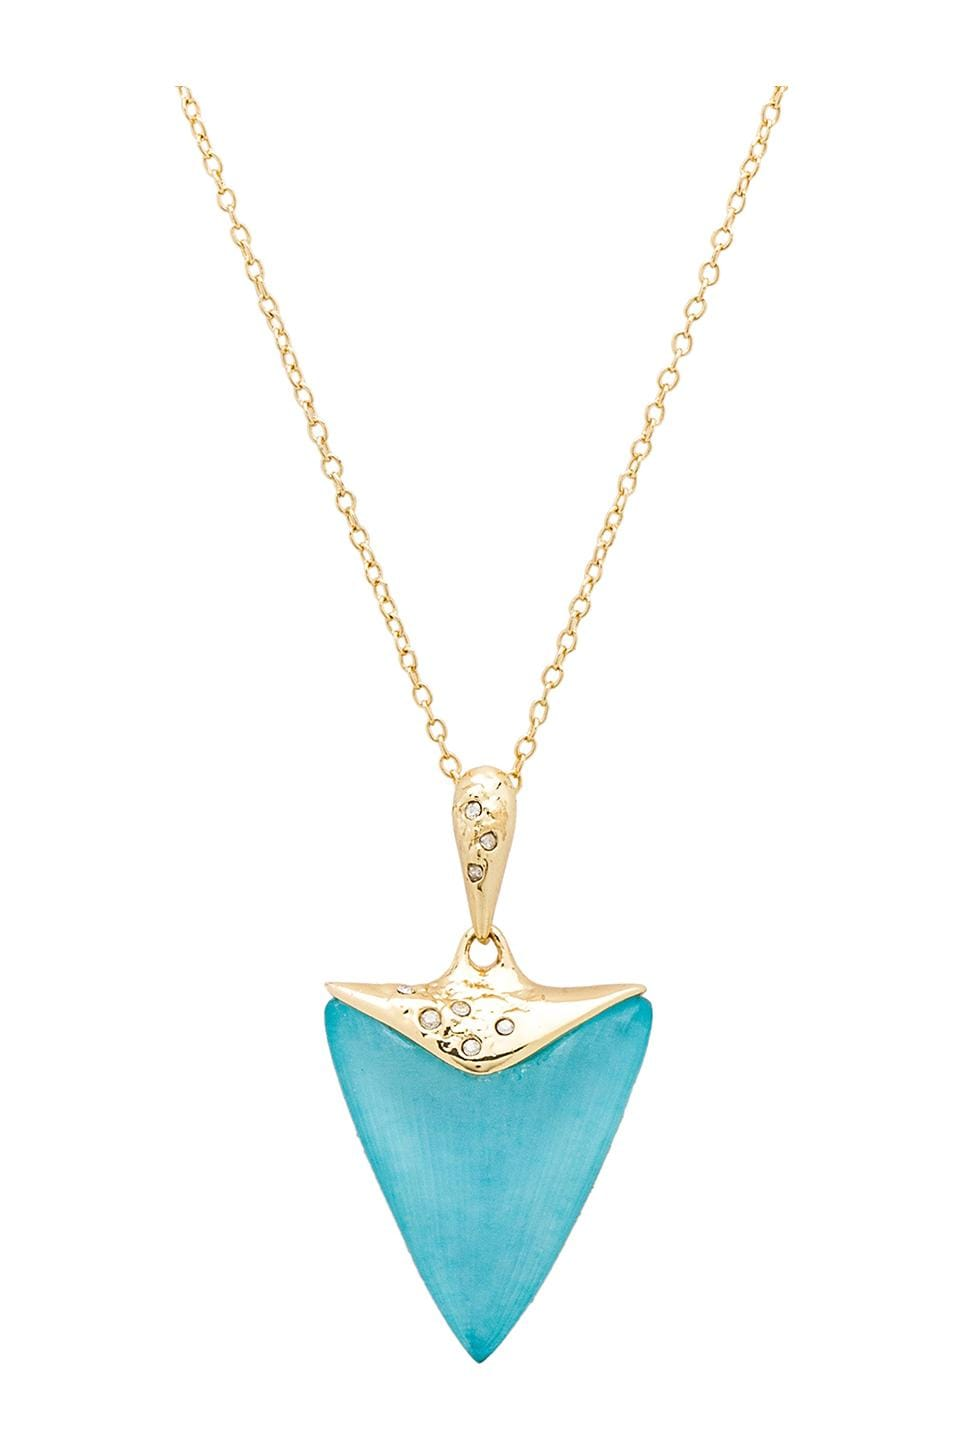 Alexis Bittar Crystal Embellished Pendant Necklace in Ice